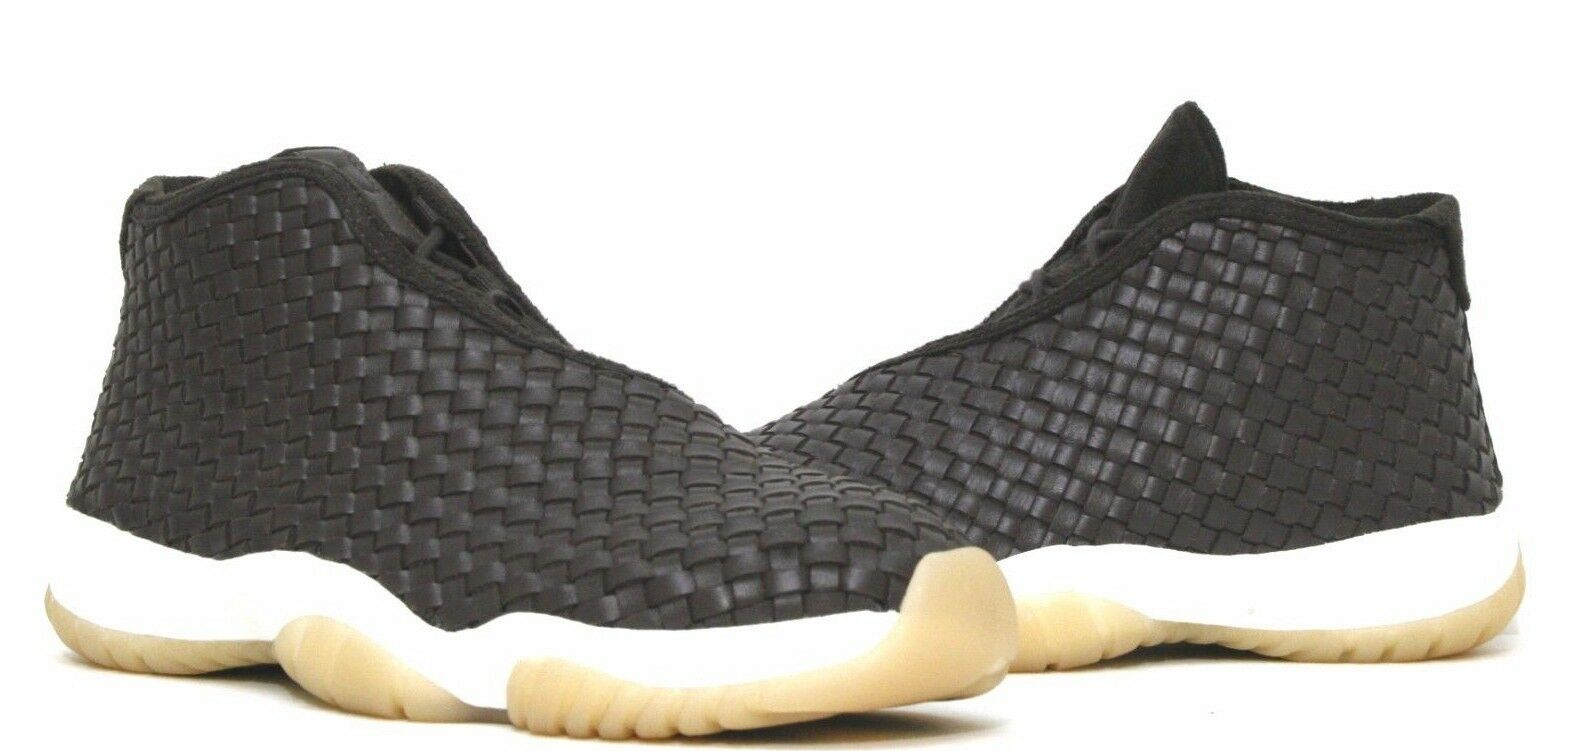 Nike Men's Shoes Air Chocolate Jordan Future Premium Dark Chocolate Air 652141-219 Sz. 10.5~14 2502b8